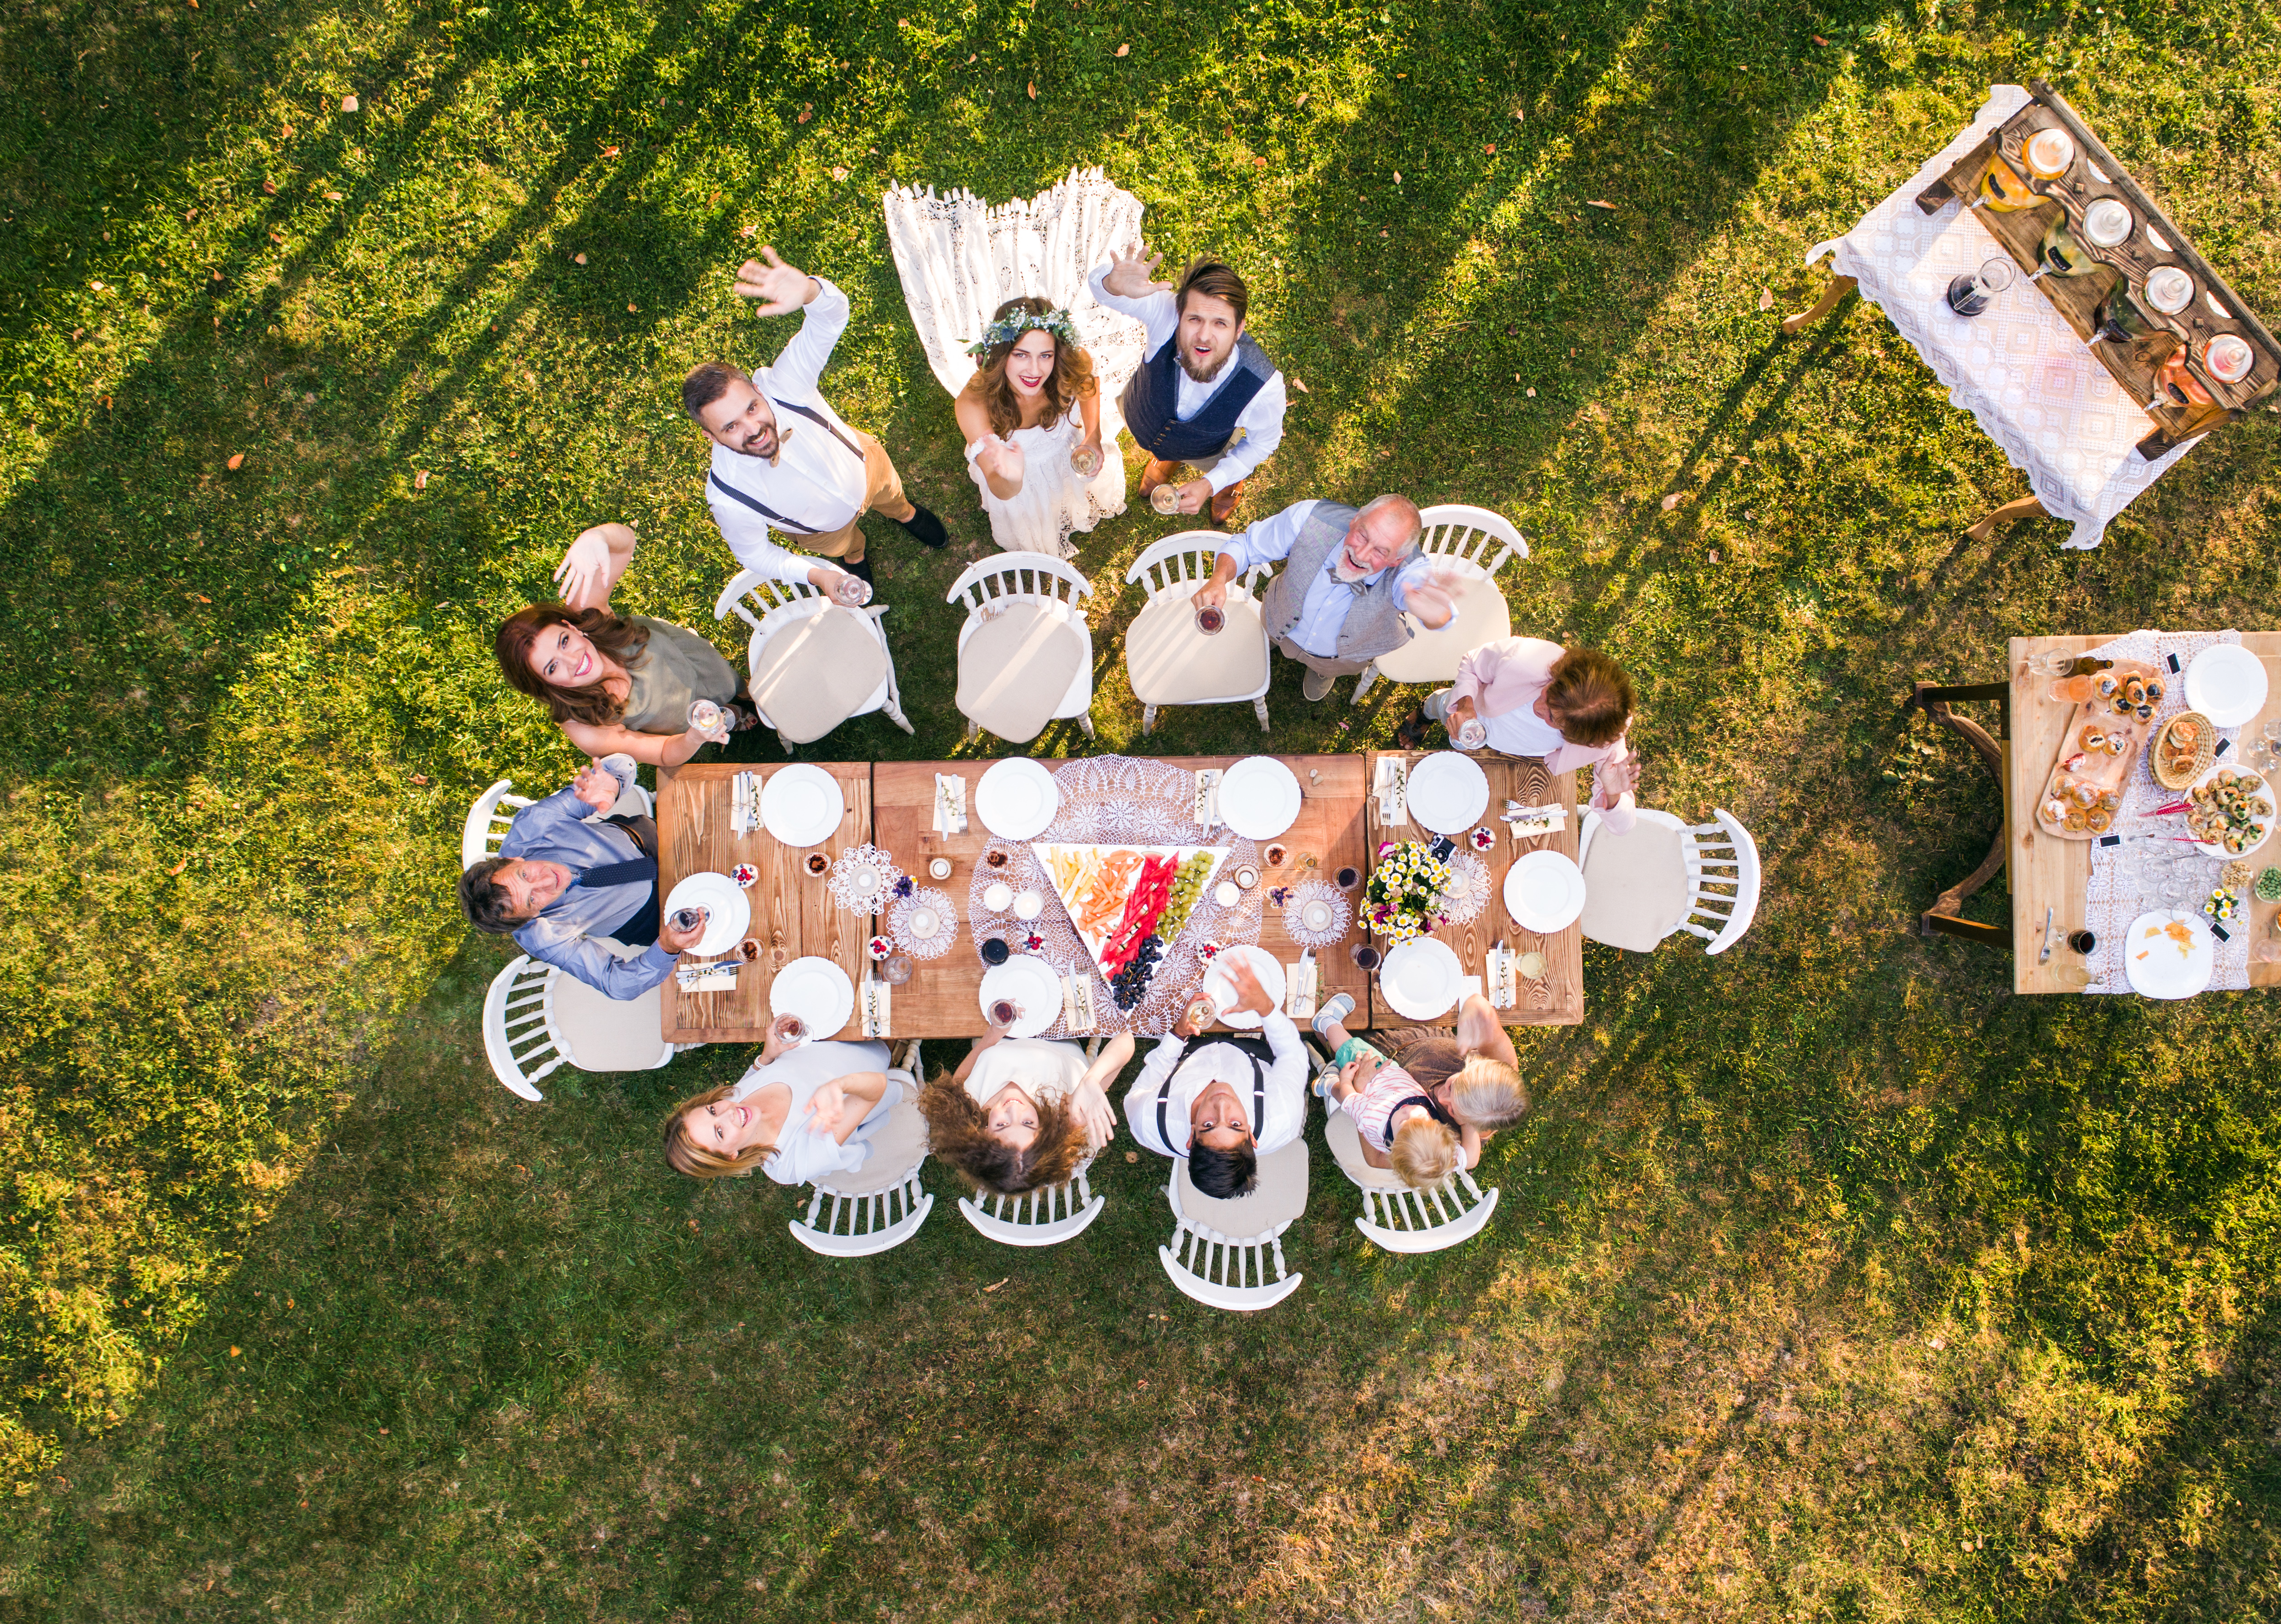 Drone Wedding Photography.7 Tips For Using Drones For Wedding Photography The Drone Girl